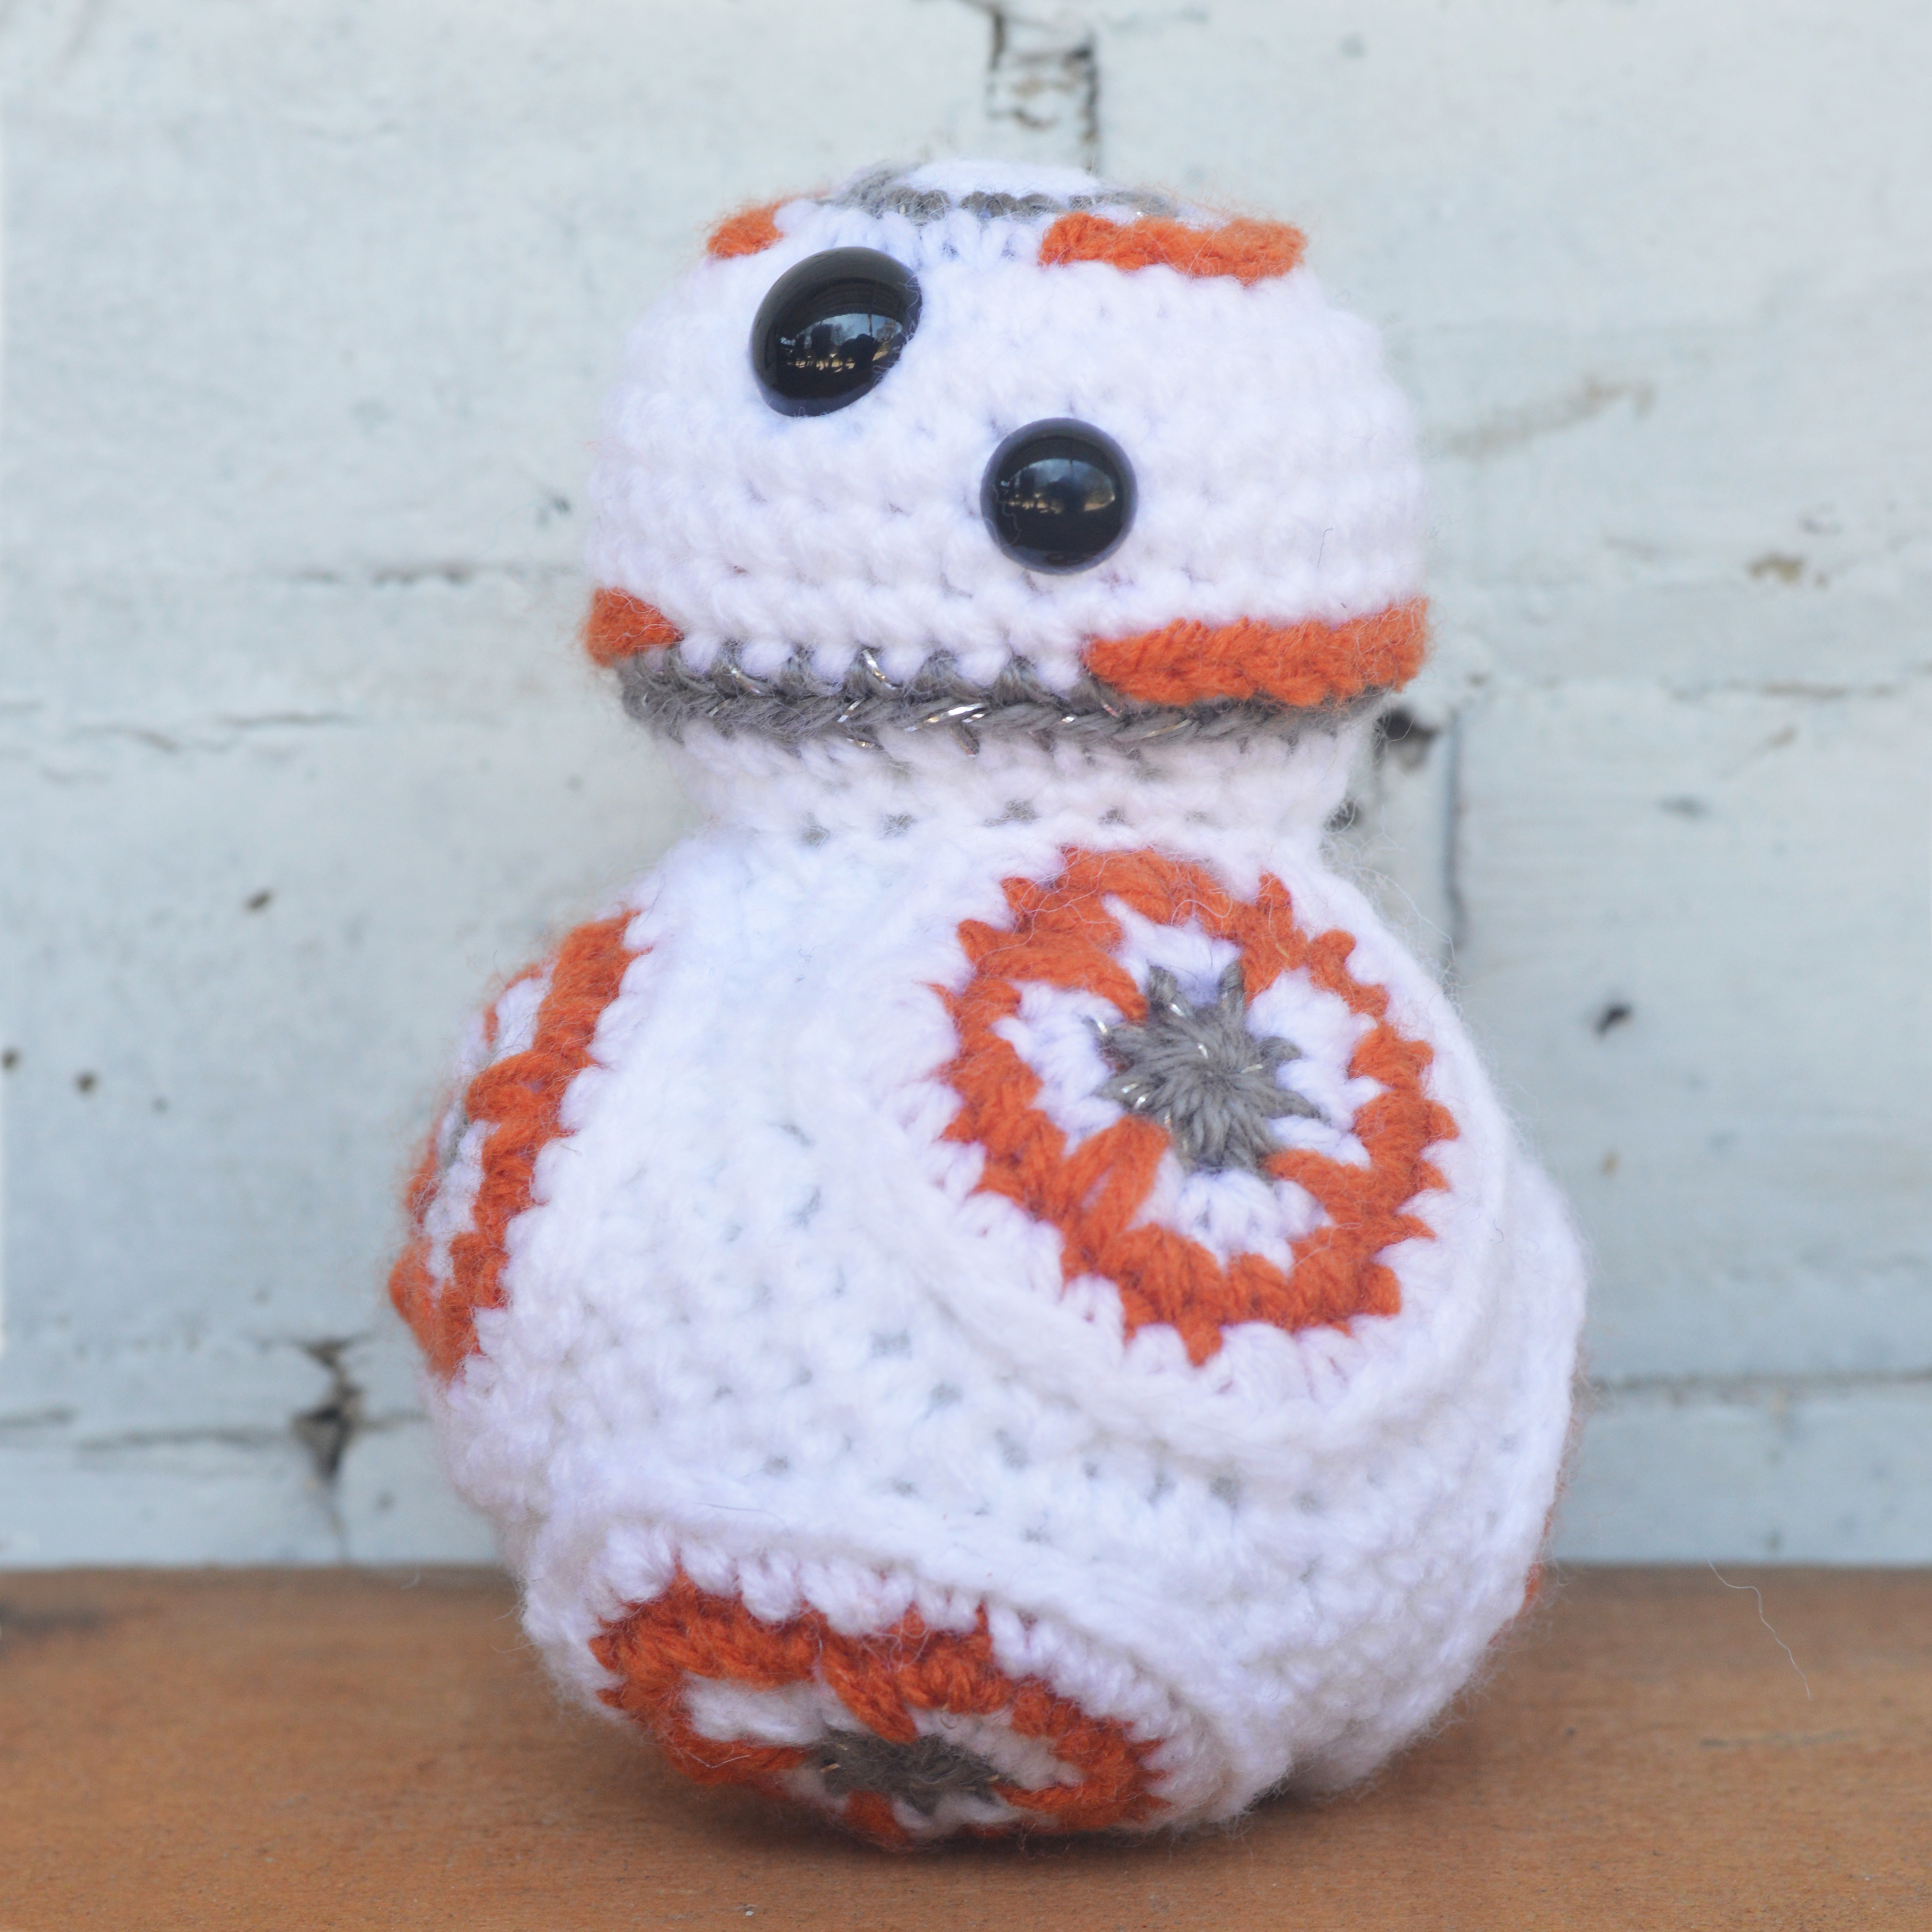 bb8_made_in_buffalo